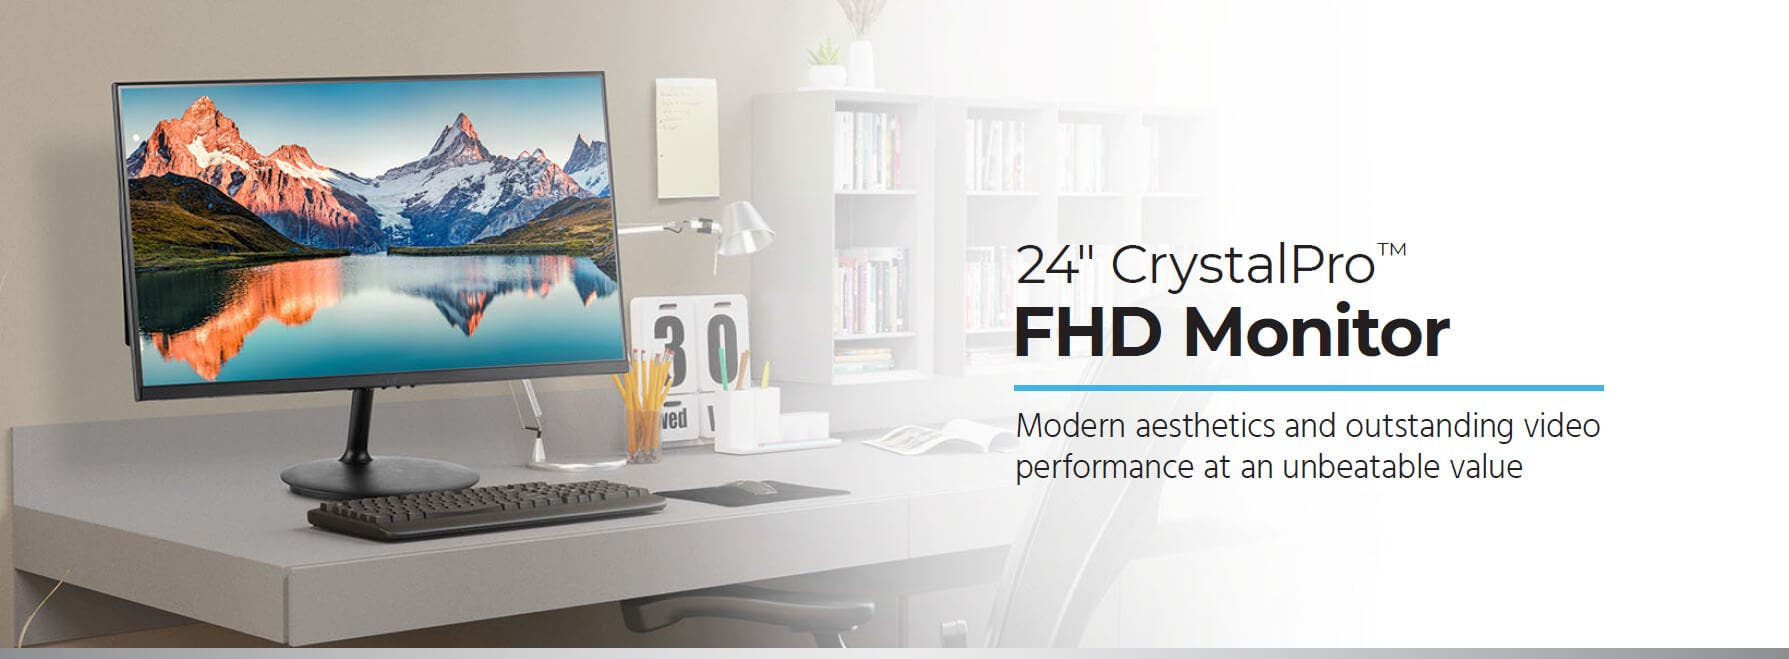 27in CrystalPro FHD Monitor